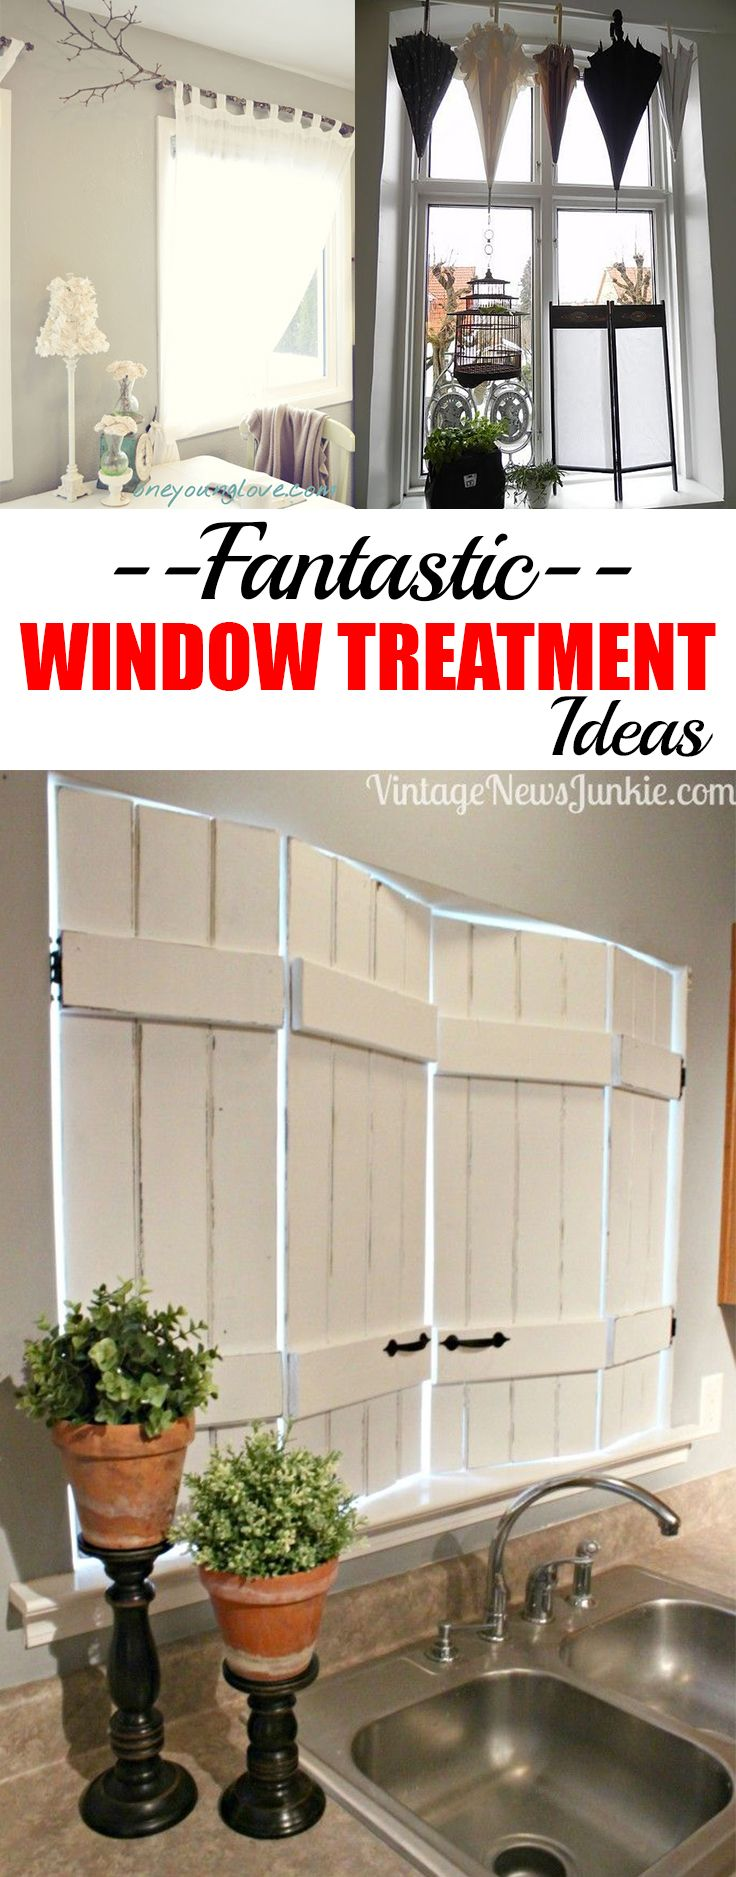 Unique rustic window treatments - Fantastically Unique Window Treatment Ideas Great Ideas To Upcycle Old Treasures To Dress Your Windows